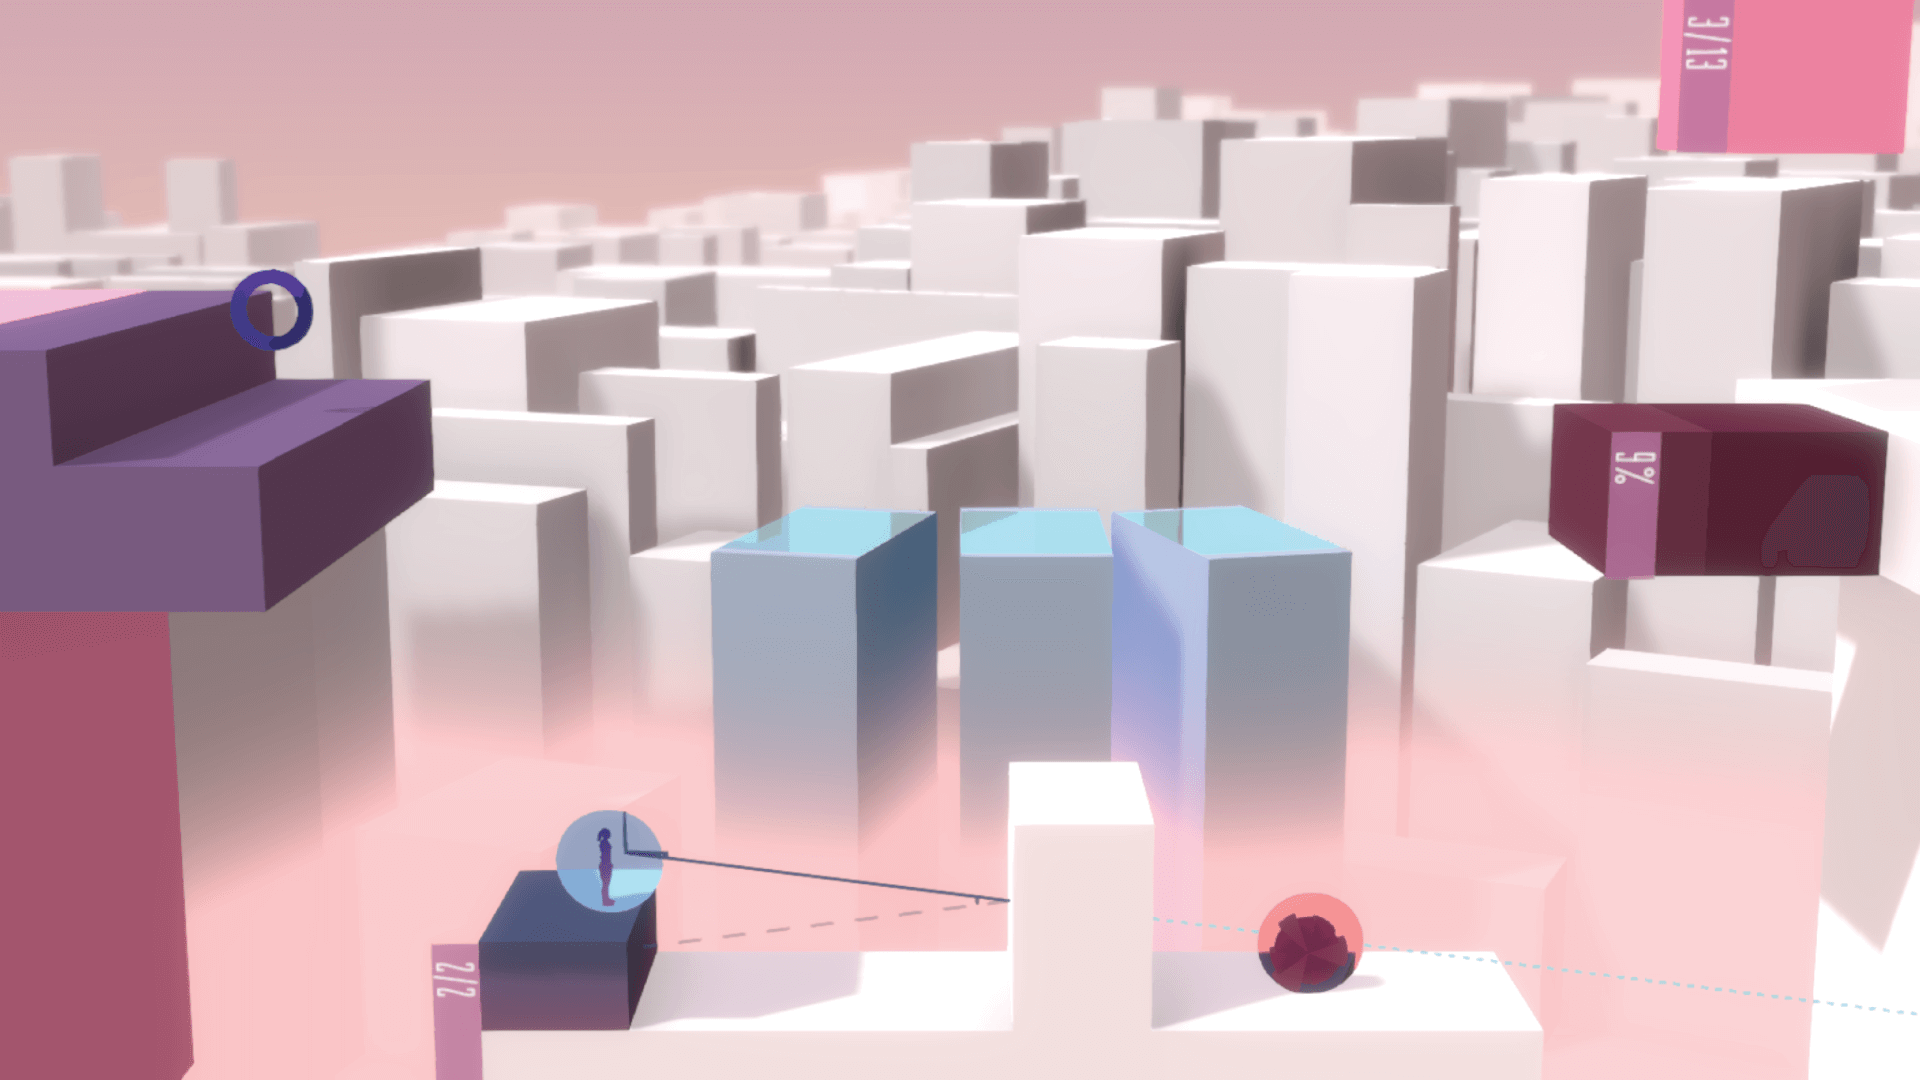 metrico_screenshot5_1920x1080